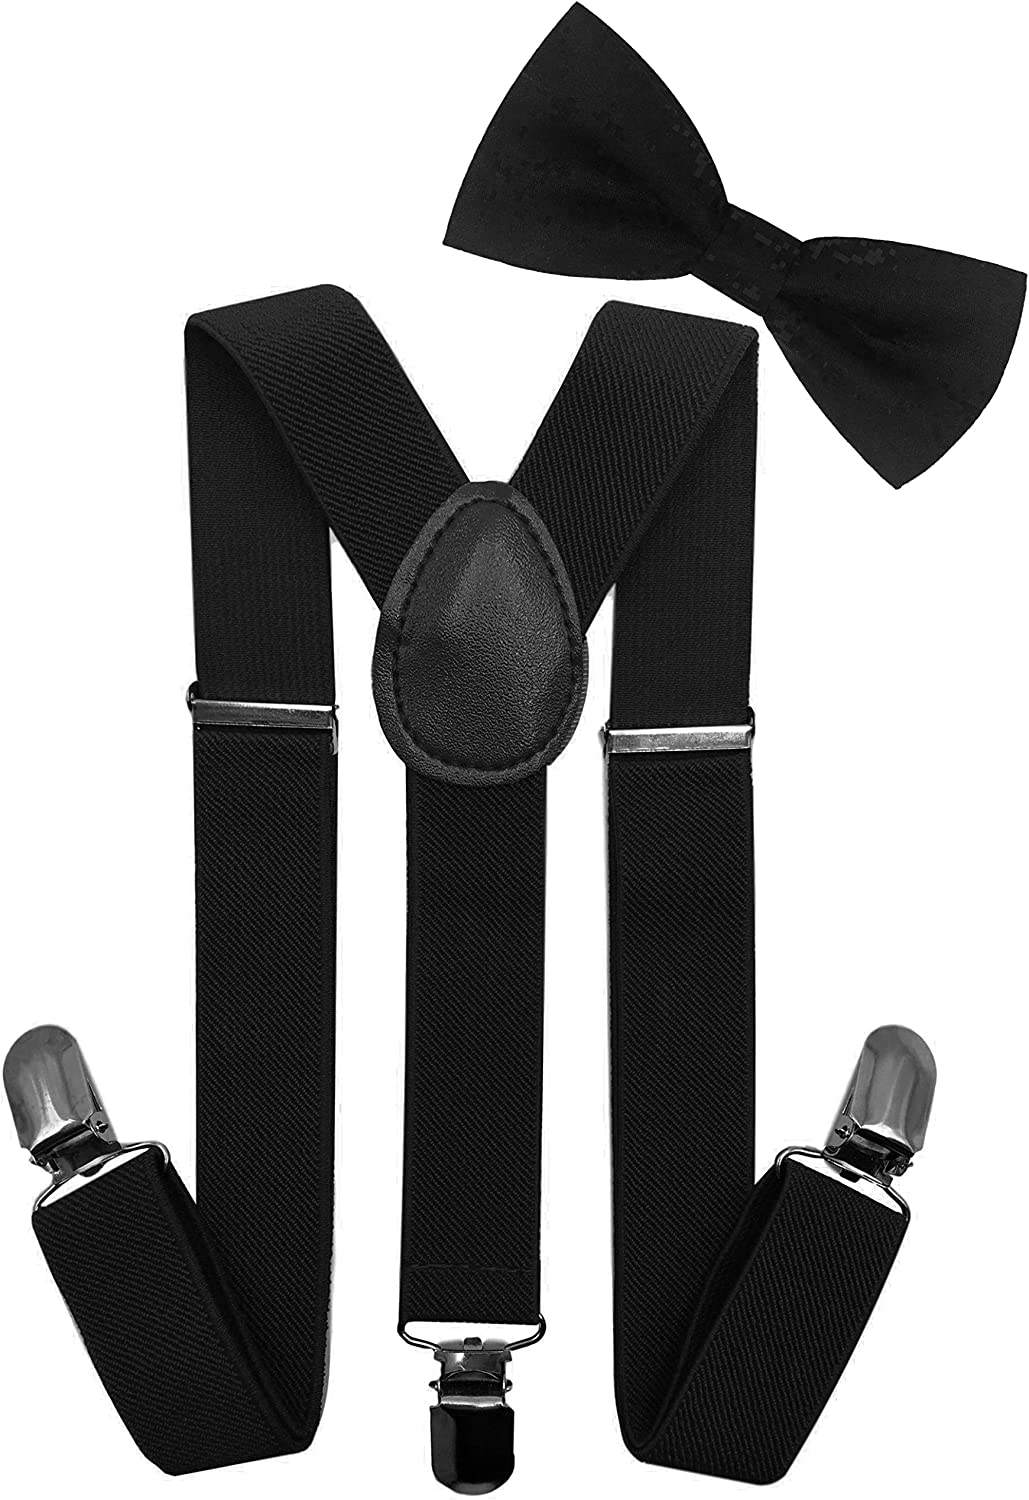 LOLELAI Toddler, Kids Suspender and Bow Tie Set | Adjustable and Elastic | for Boys and Girls